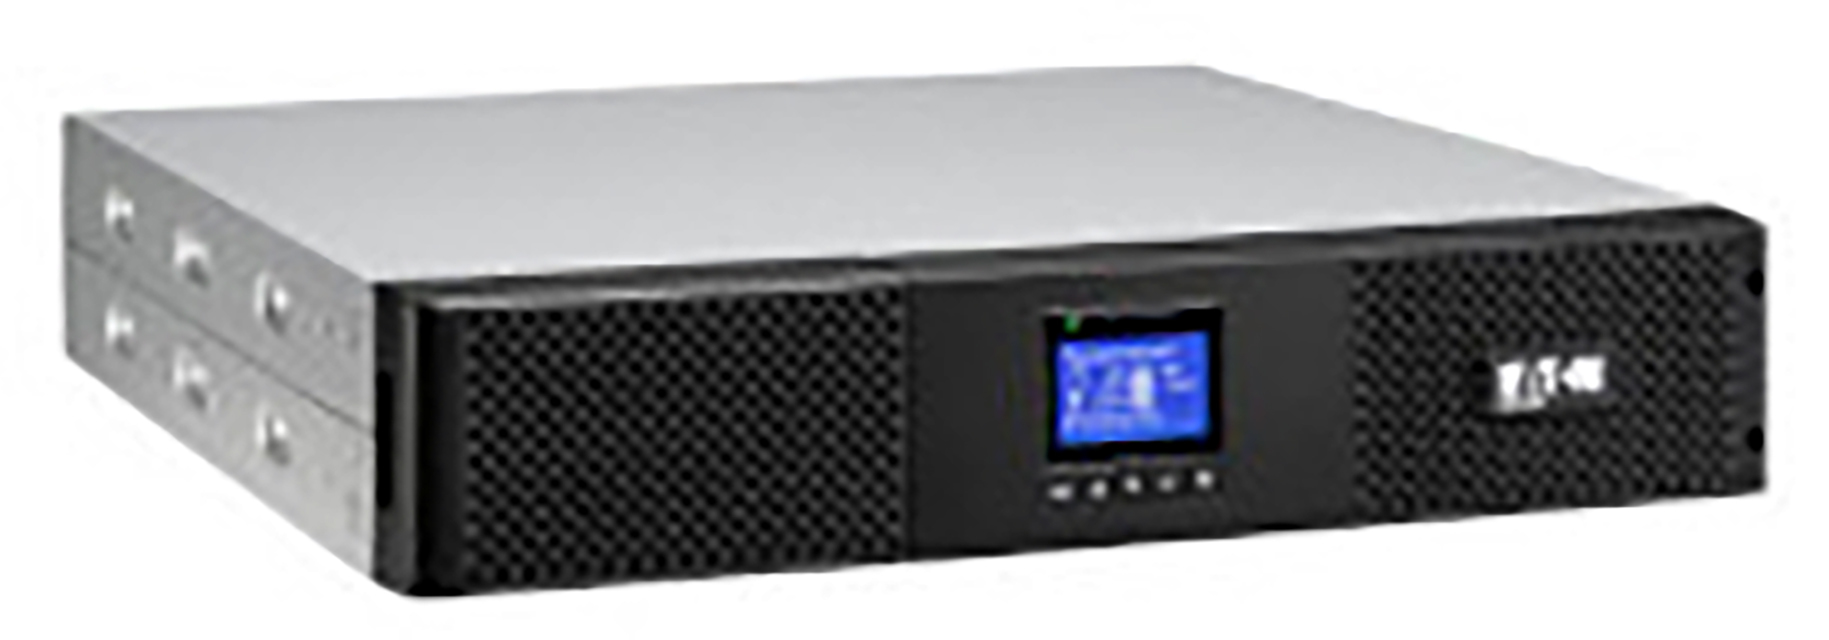 Eaton 9SX uninterruptible power supply (UPS) 3000 VA 9 AC outlet(s) Double-conversion (Online)